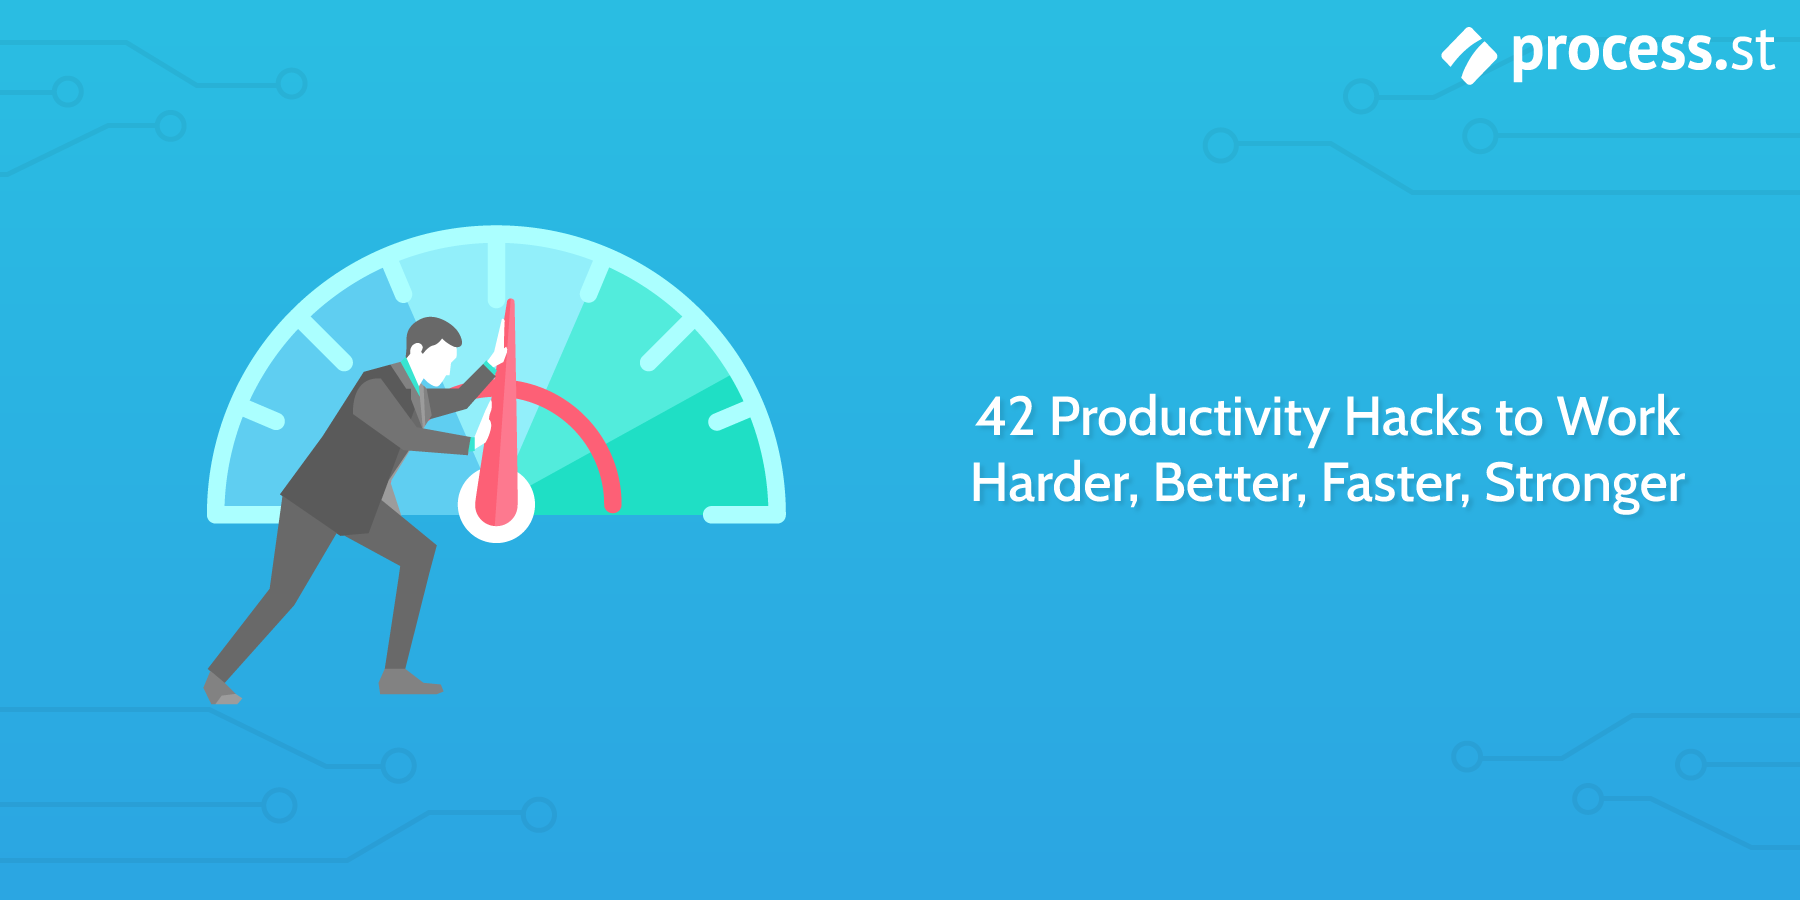 42 Productivity Hacks to Work Harder, Better, Faster, Stronger